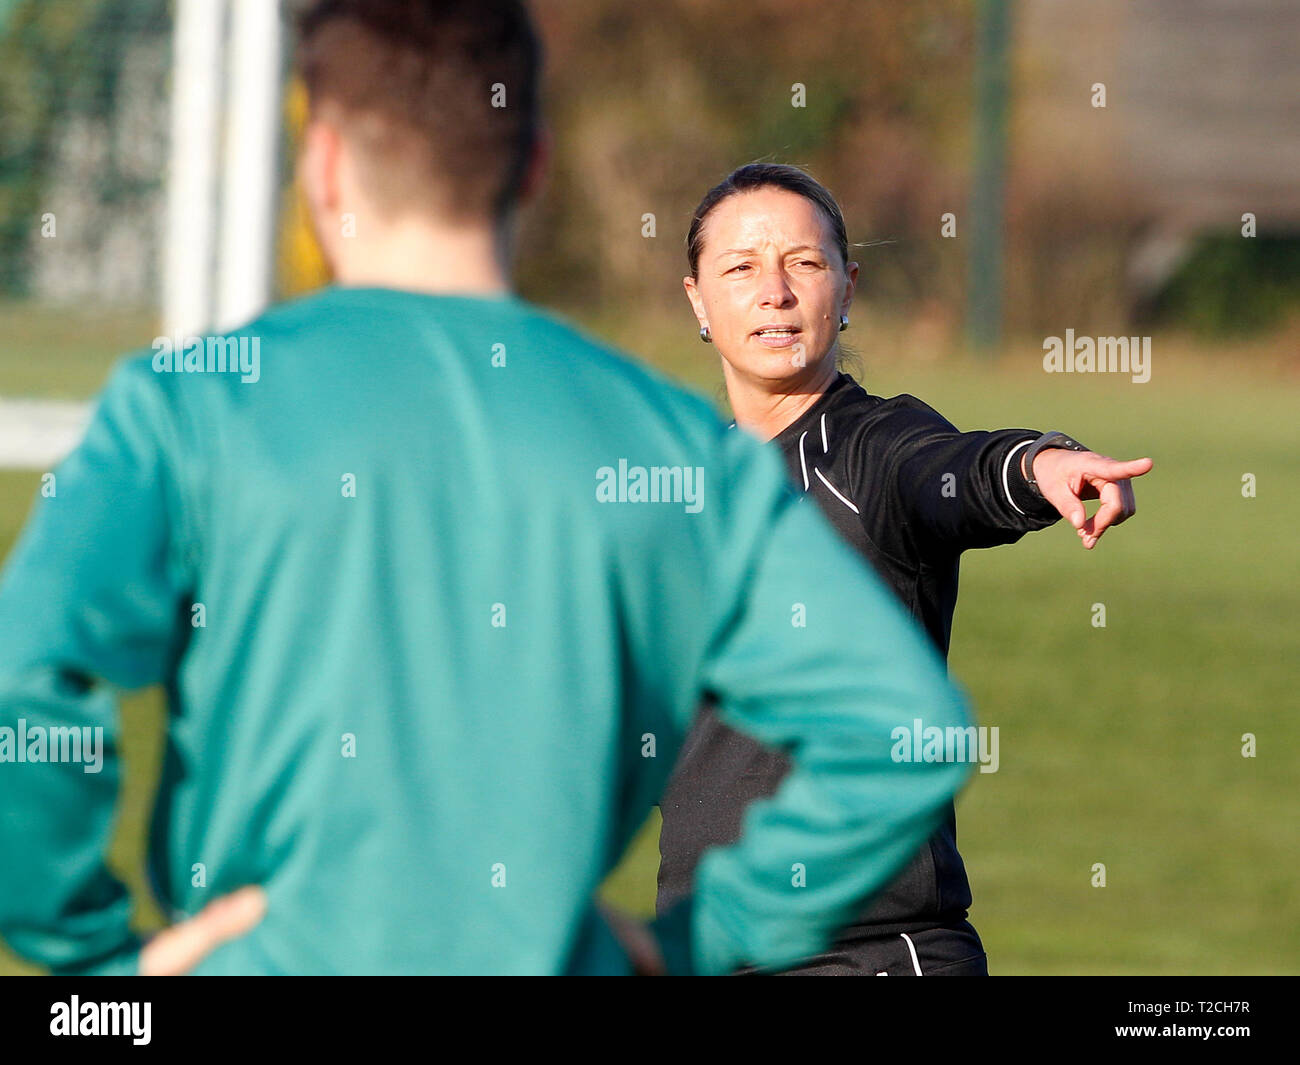 Duisburg, Germany. 01st Apr, 2019. Soccer: Regionalliga West, SV Straelen. For the first time Inka Grings leads the training at the fourth league team SV Straelen. This makes her the first woman to take on a coaching position in the regional fourth division. Credit: Roland Weihrauch/dpa/Alamy Live News - Stock Image